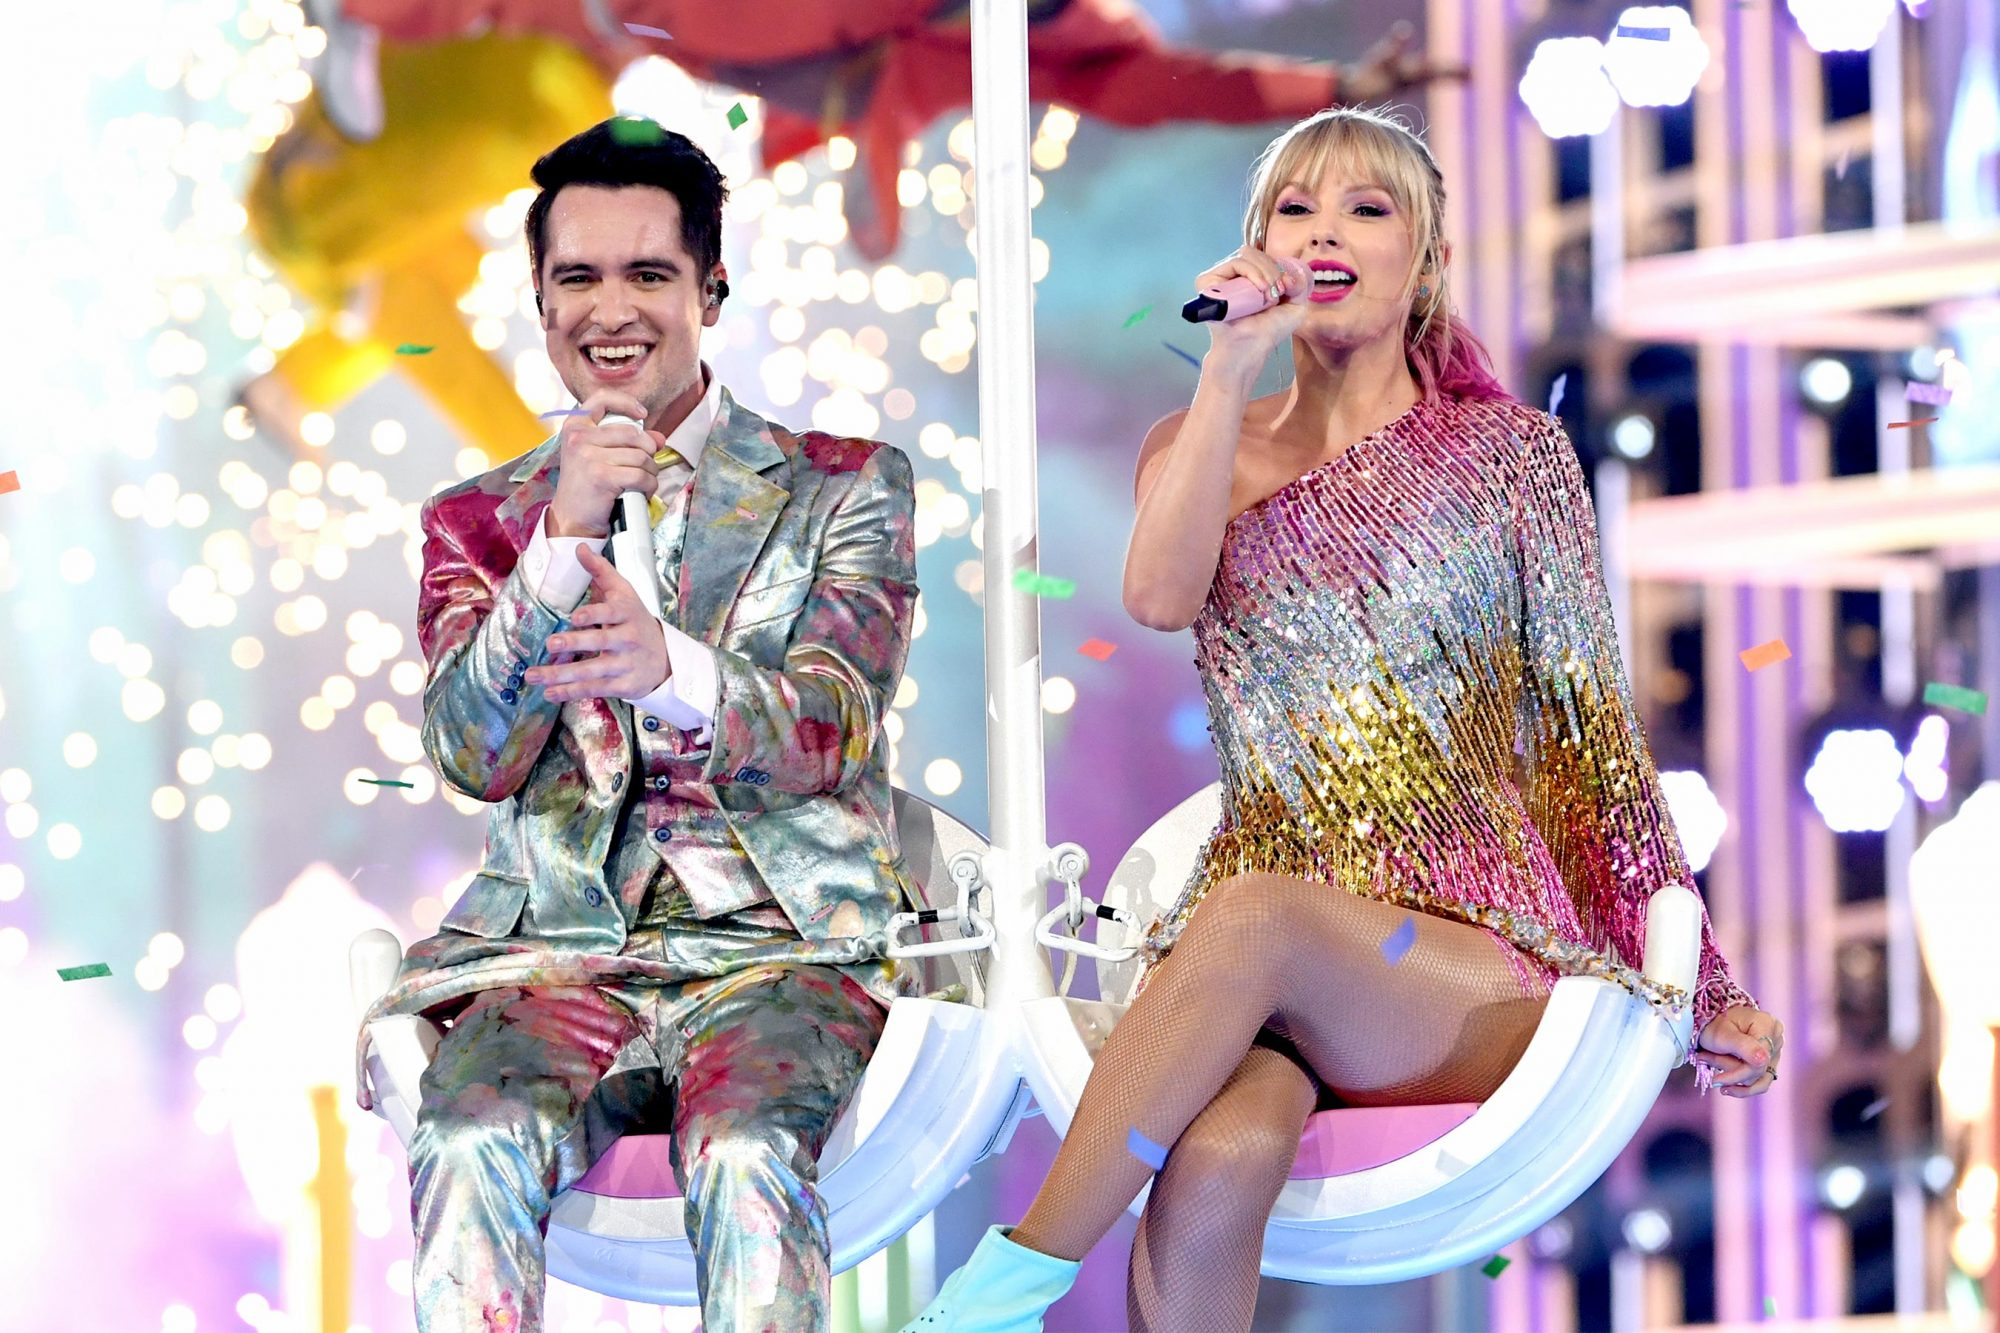 LAS VEGAS, NEVADA - MAY 01: (L-R) Brendon Urie of Panic! at the Disco and Taylor Swift perform onstage during the 2019 Billboard Music Awards at MGM Grand Garden Arena on May 01, 2019 in Las Vegas, Nevada. (Photo by Kevin Winter/Getty Images for dcp)